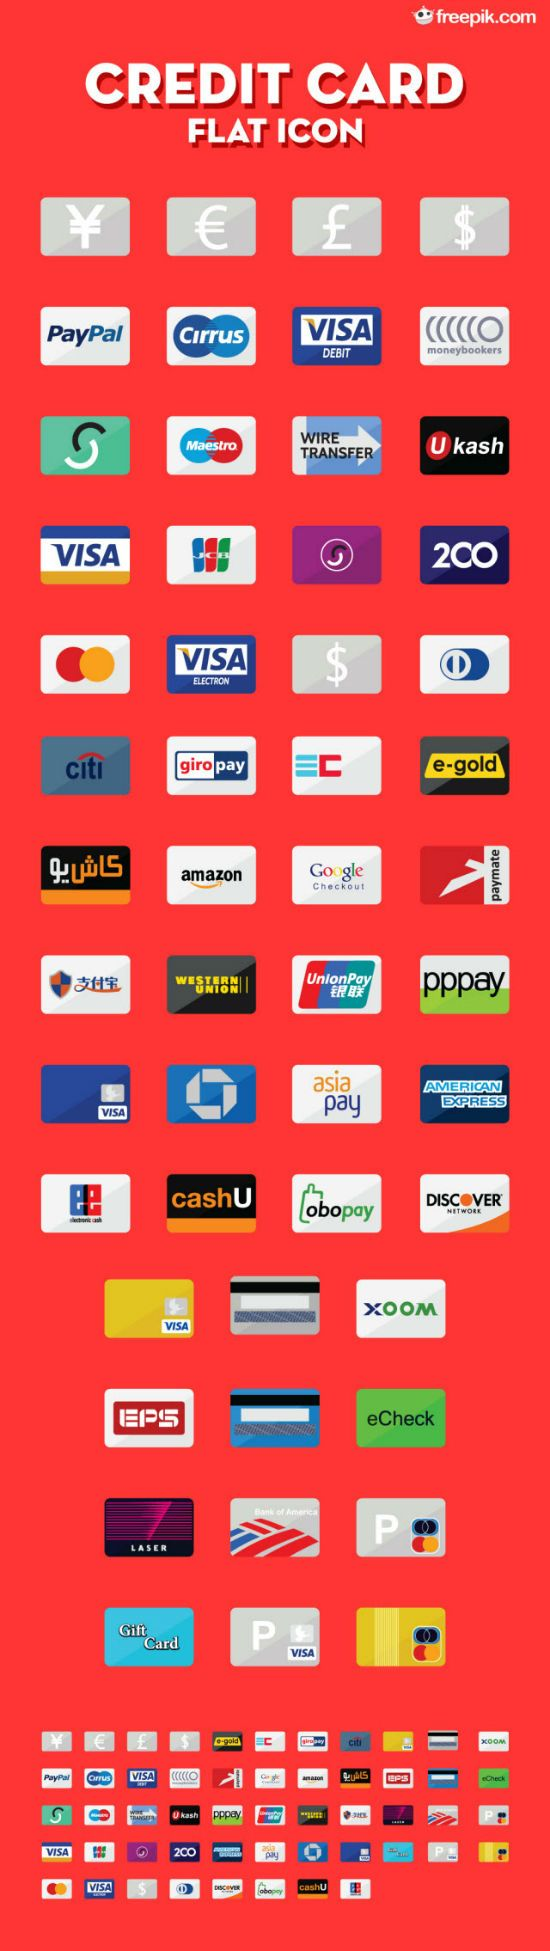 Credit Card Flat Icons: 50+ Symbols in PNG, AI, EPS and SVG by Freepik >> http://www.noupe.com/freebie/e-commerce-freebie-on-noupe-50-credit-card-flat-icons-by-freepik-80402.html